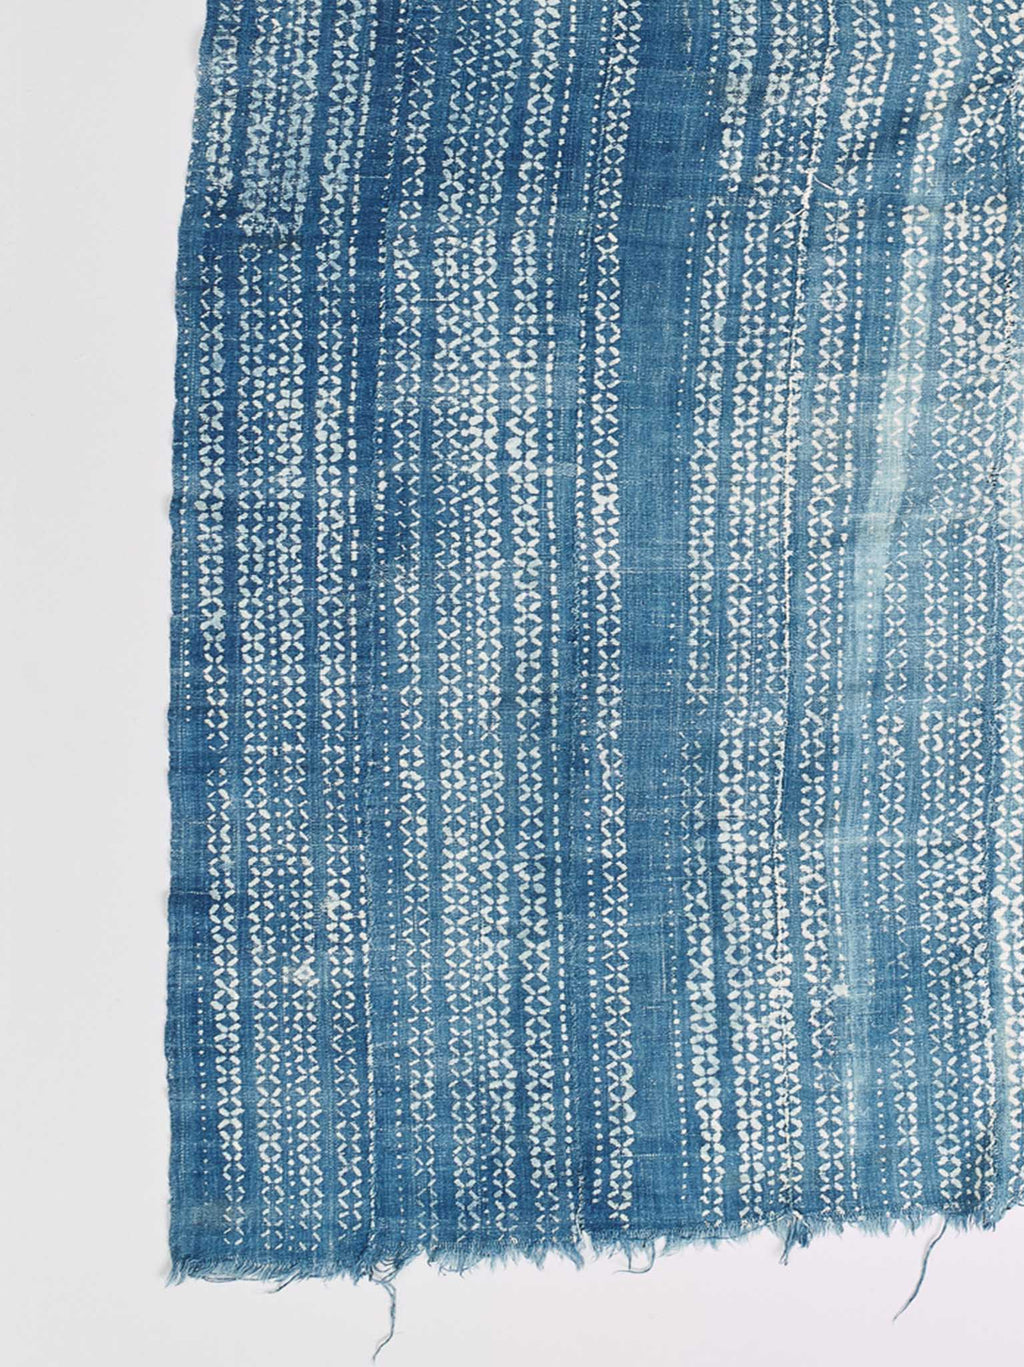 pale blue indigo mali indigo cloth nomad design